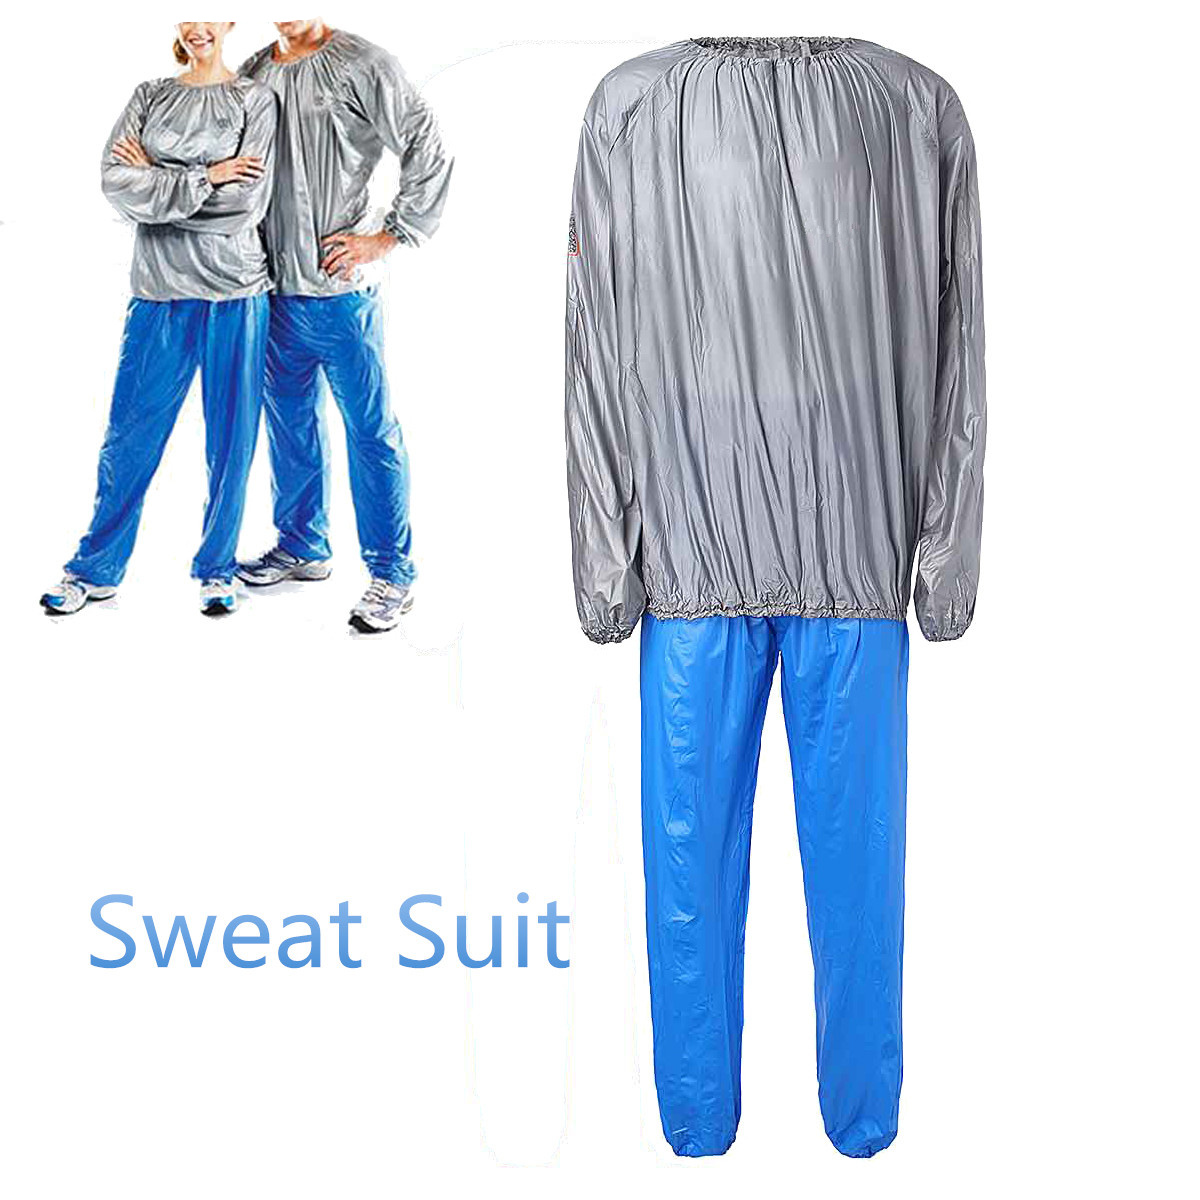 Sauna Suit Swear Workout PVC Fitness Unisex Slimmer Gym-Cloth Loss-Weight Exercise Body-Building